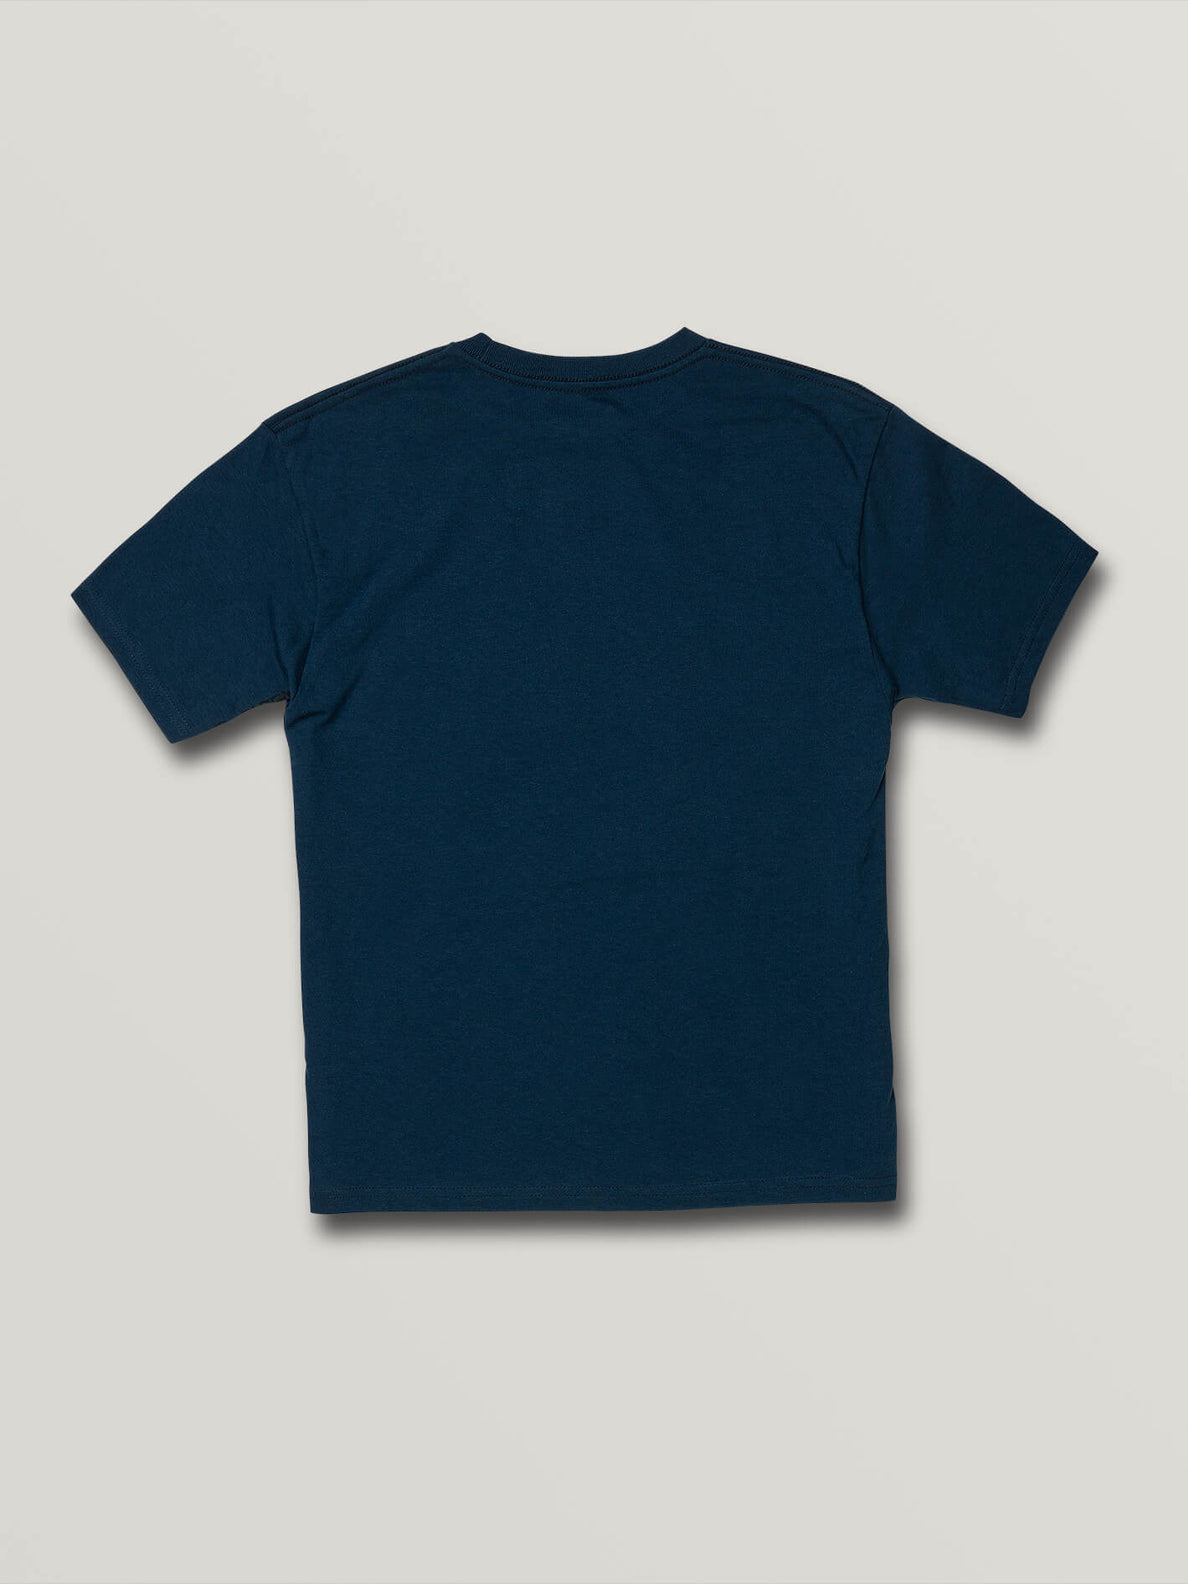 DYCUT S/S TEE YOUTH (C3512034_HRB) [B]